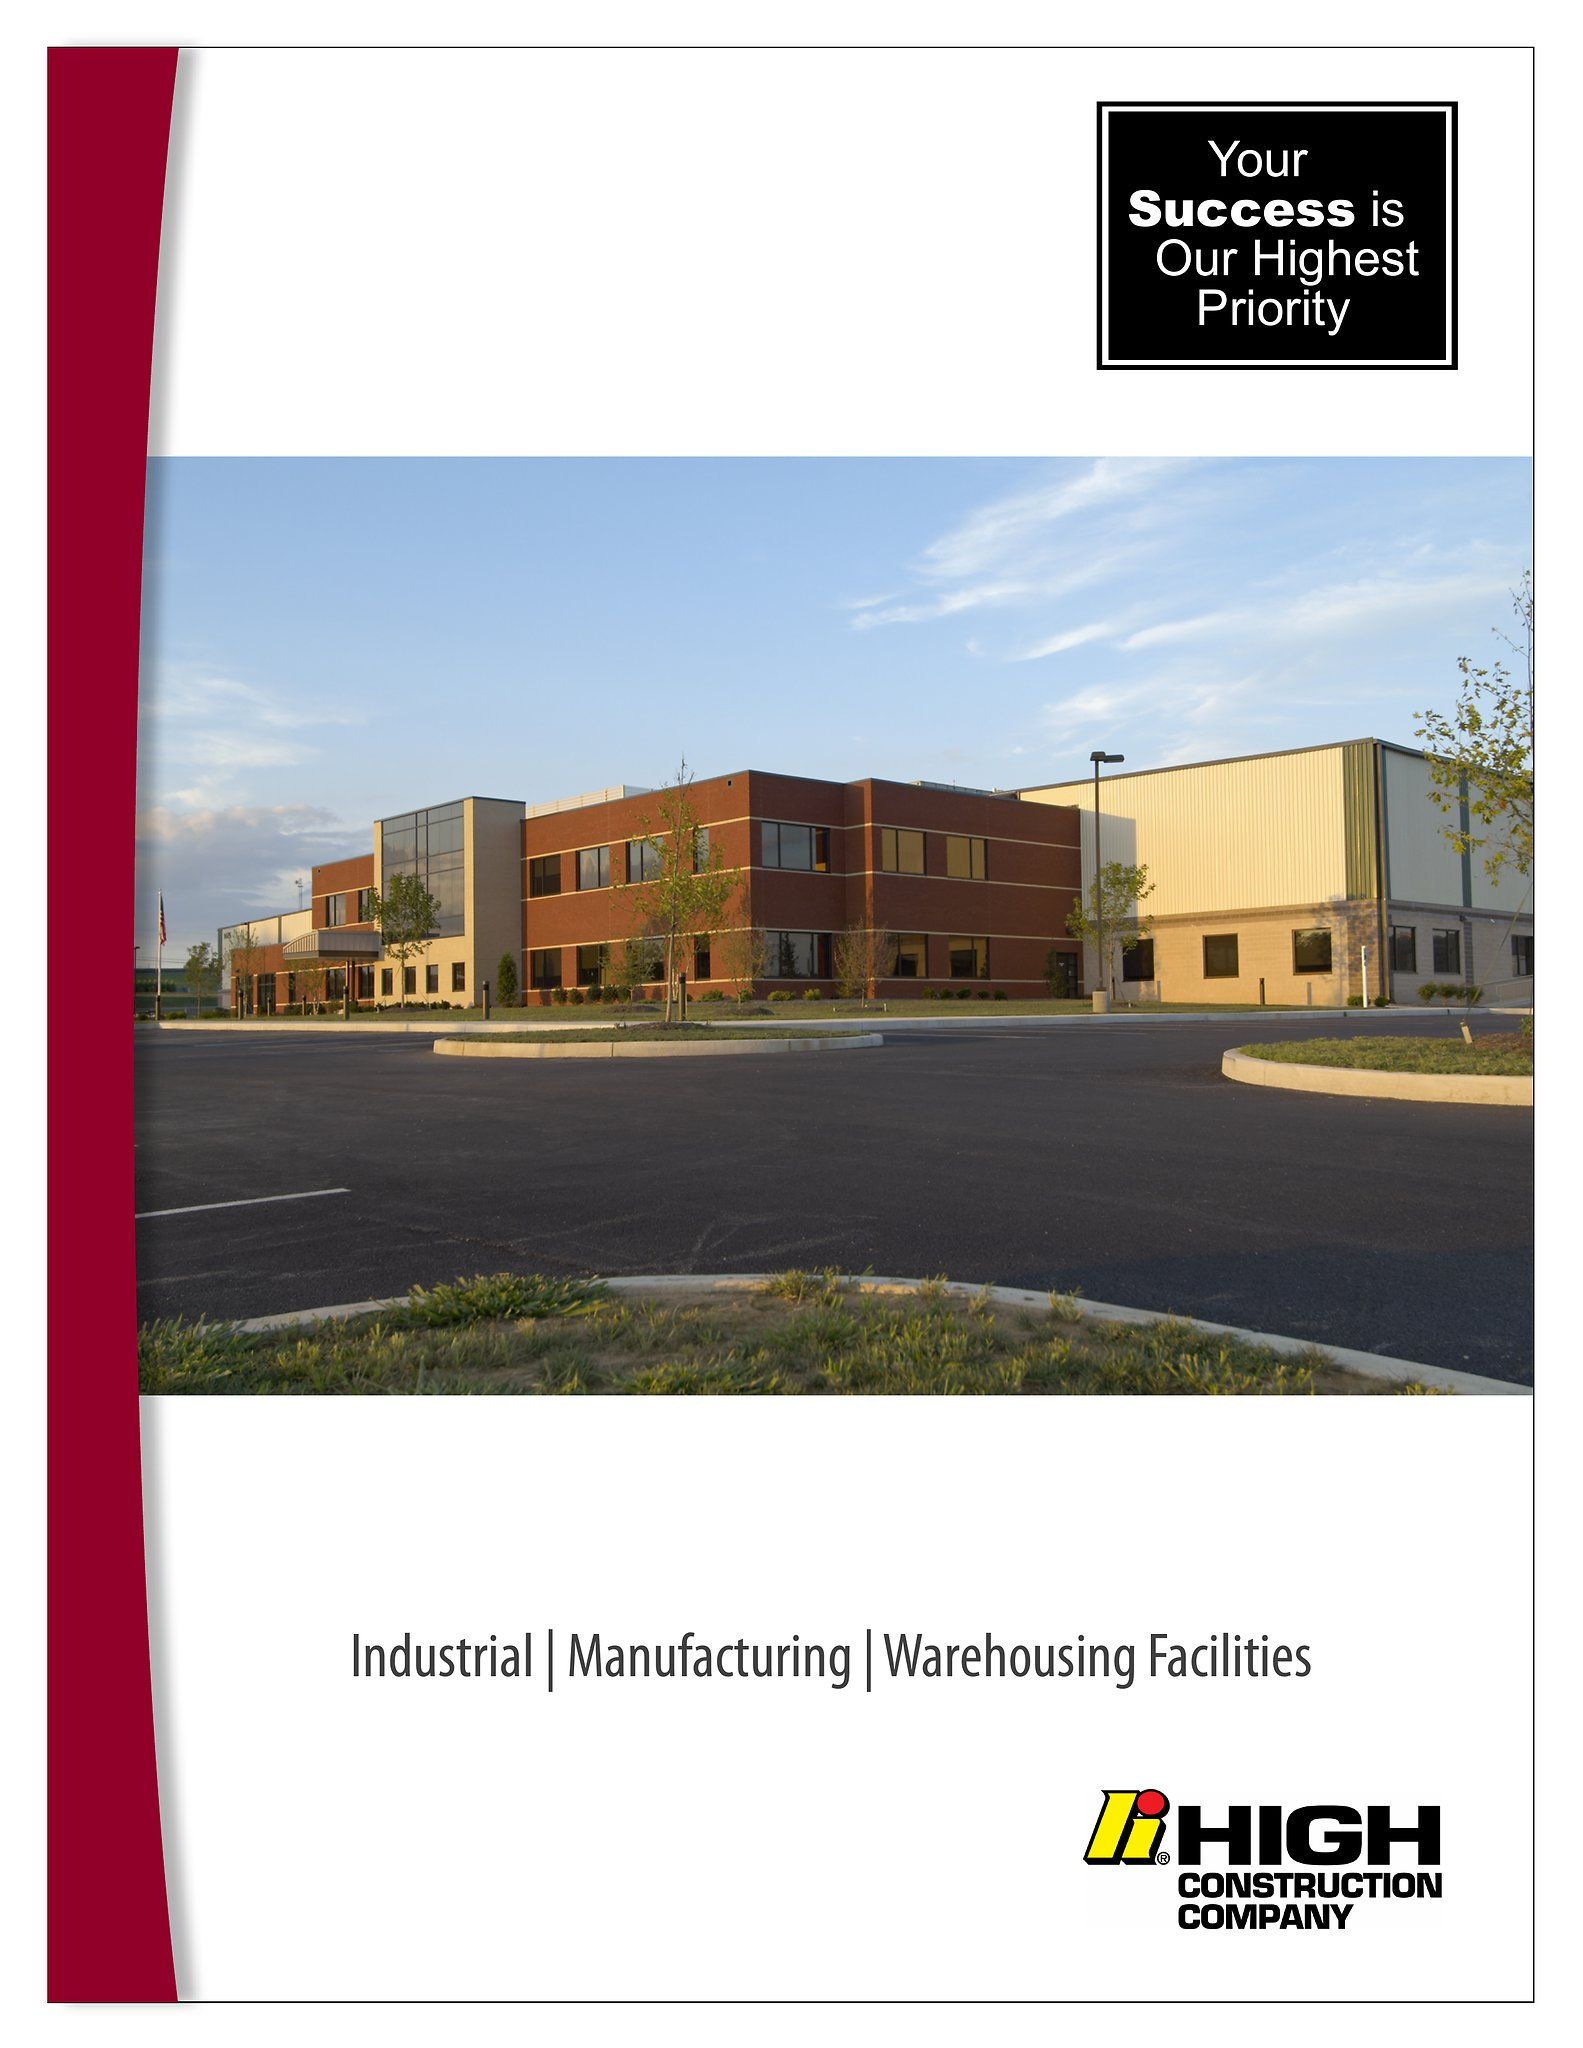 High Construction Company Brochure - Industrial / Manufacturing/ Warehousing